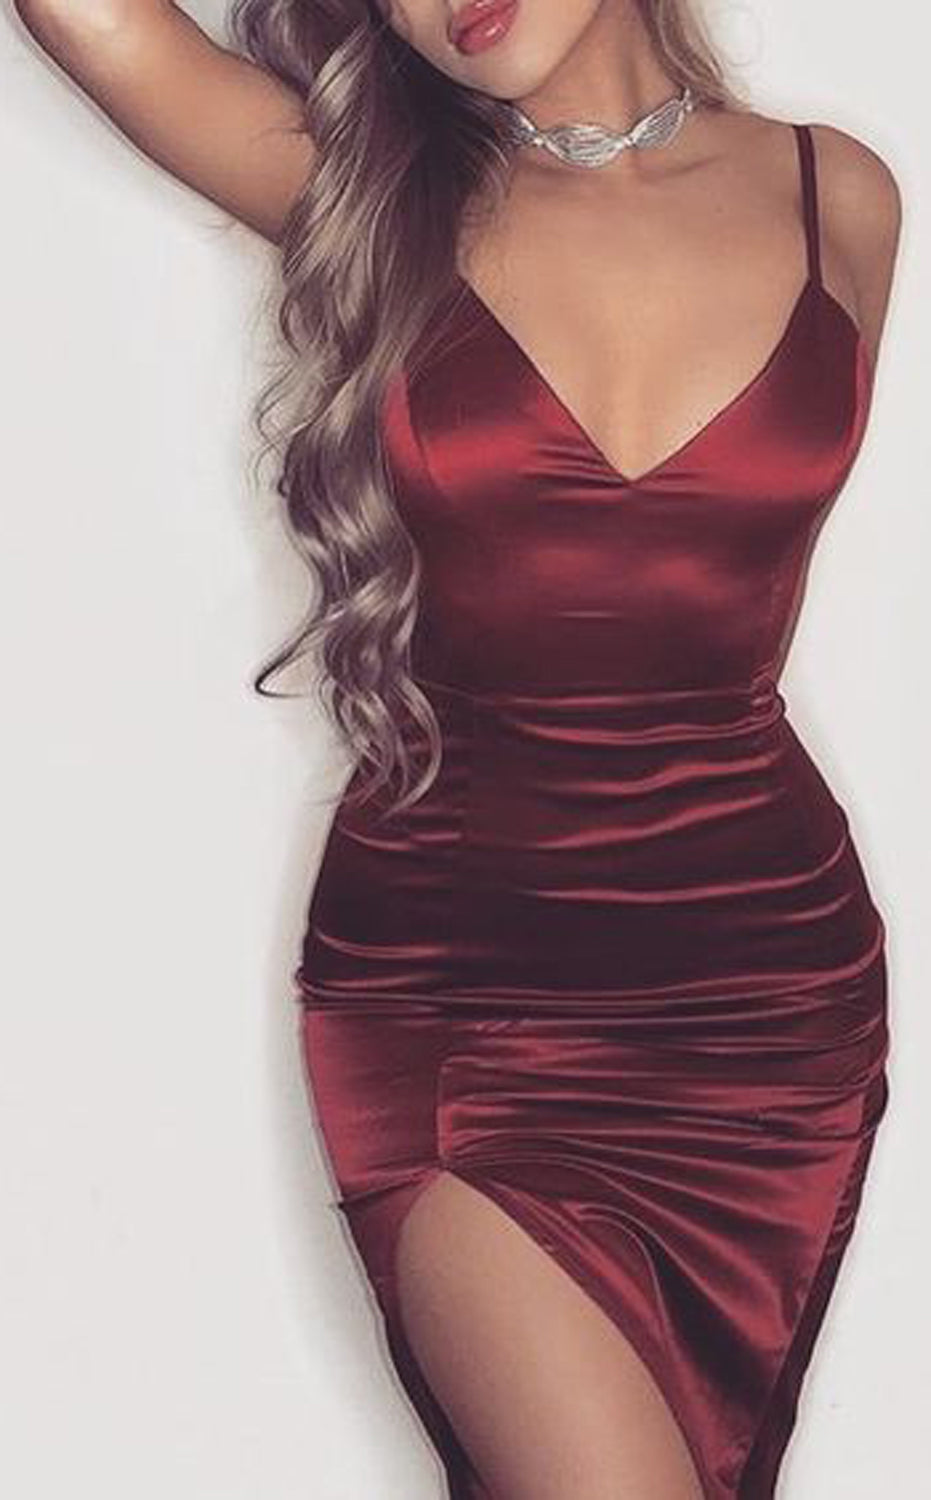 Clubbing Evening Cocktail Party Dressy Romantic Outfit Ideas for Women - Burgundy Red Satin Mini Dress- día de san valentín Outfit Ideas para mujeres - www.GlamantiBeauty.com